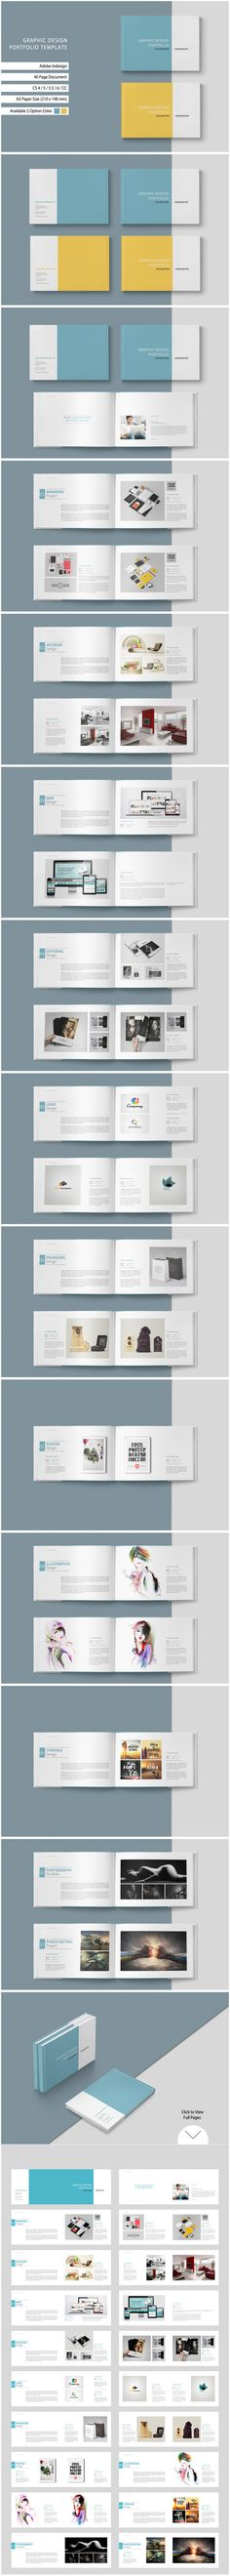 This is 40 page minimal brochure template is for designers working on product/graphic design portfolios interior design catalogues, product catalogues, and agency based projects. Just drop in your own images and texts, and its Ready to Print.